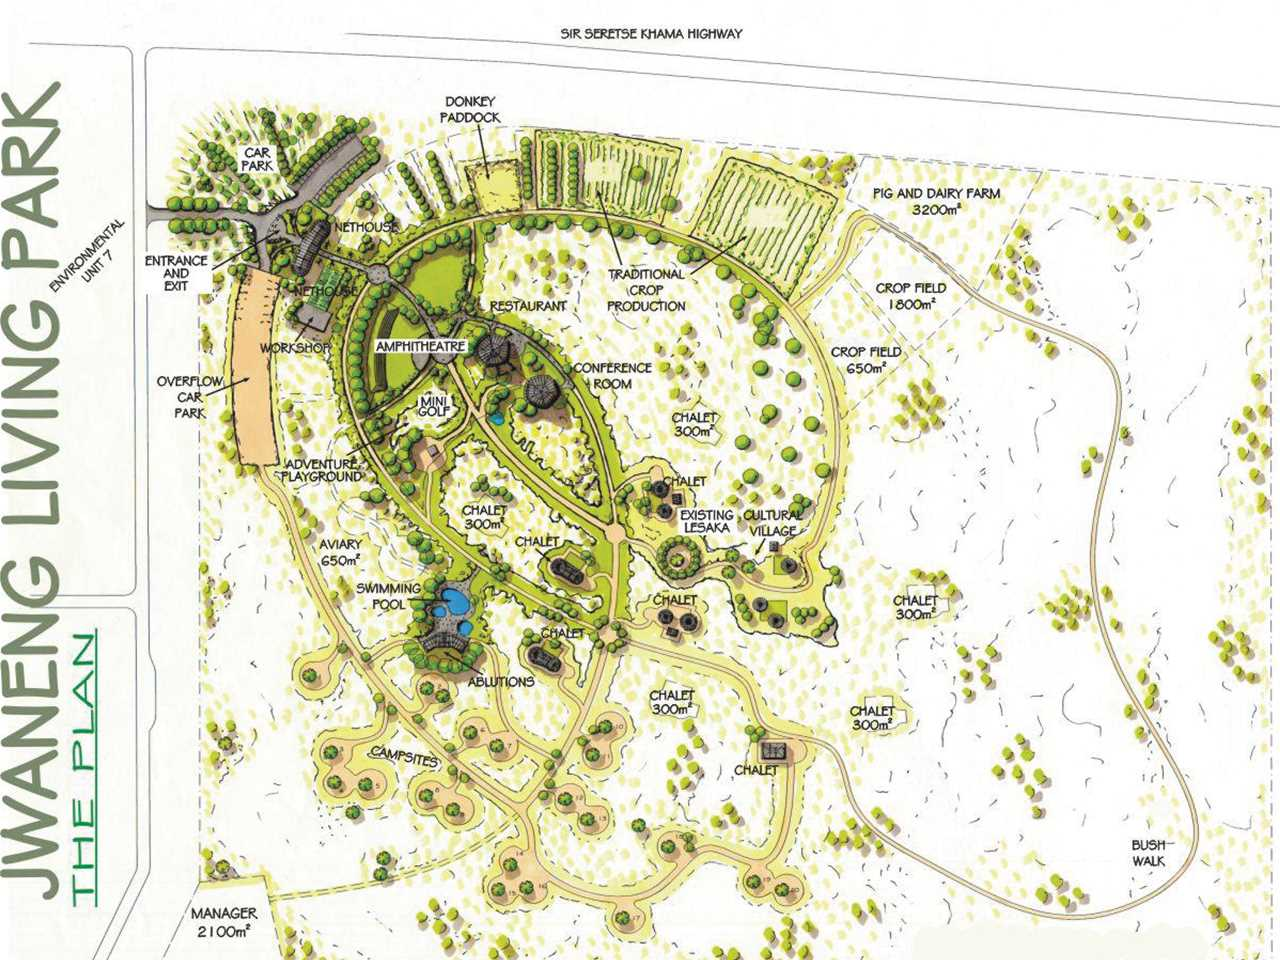 Holcim Awards Acknowledgement prize 2005 Africa Middle East: The Living Park, Jwaneng, Botswana